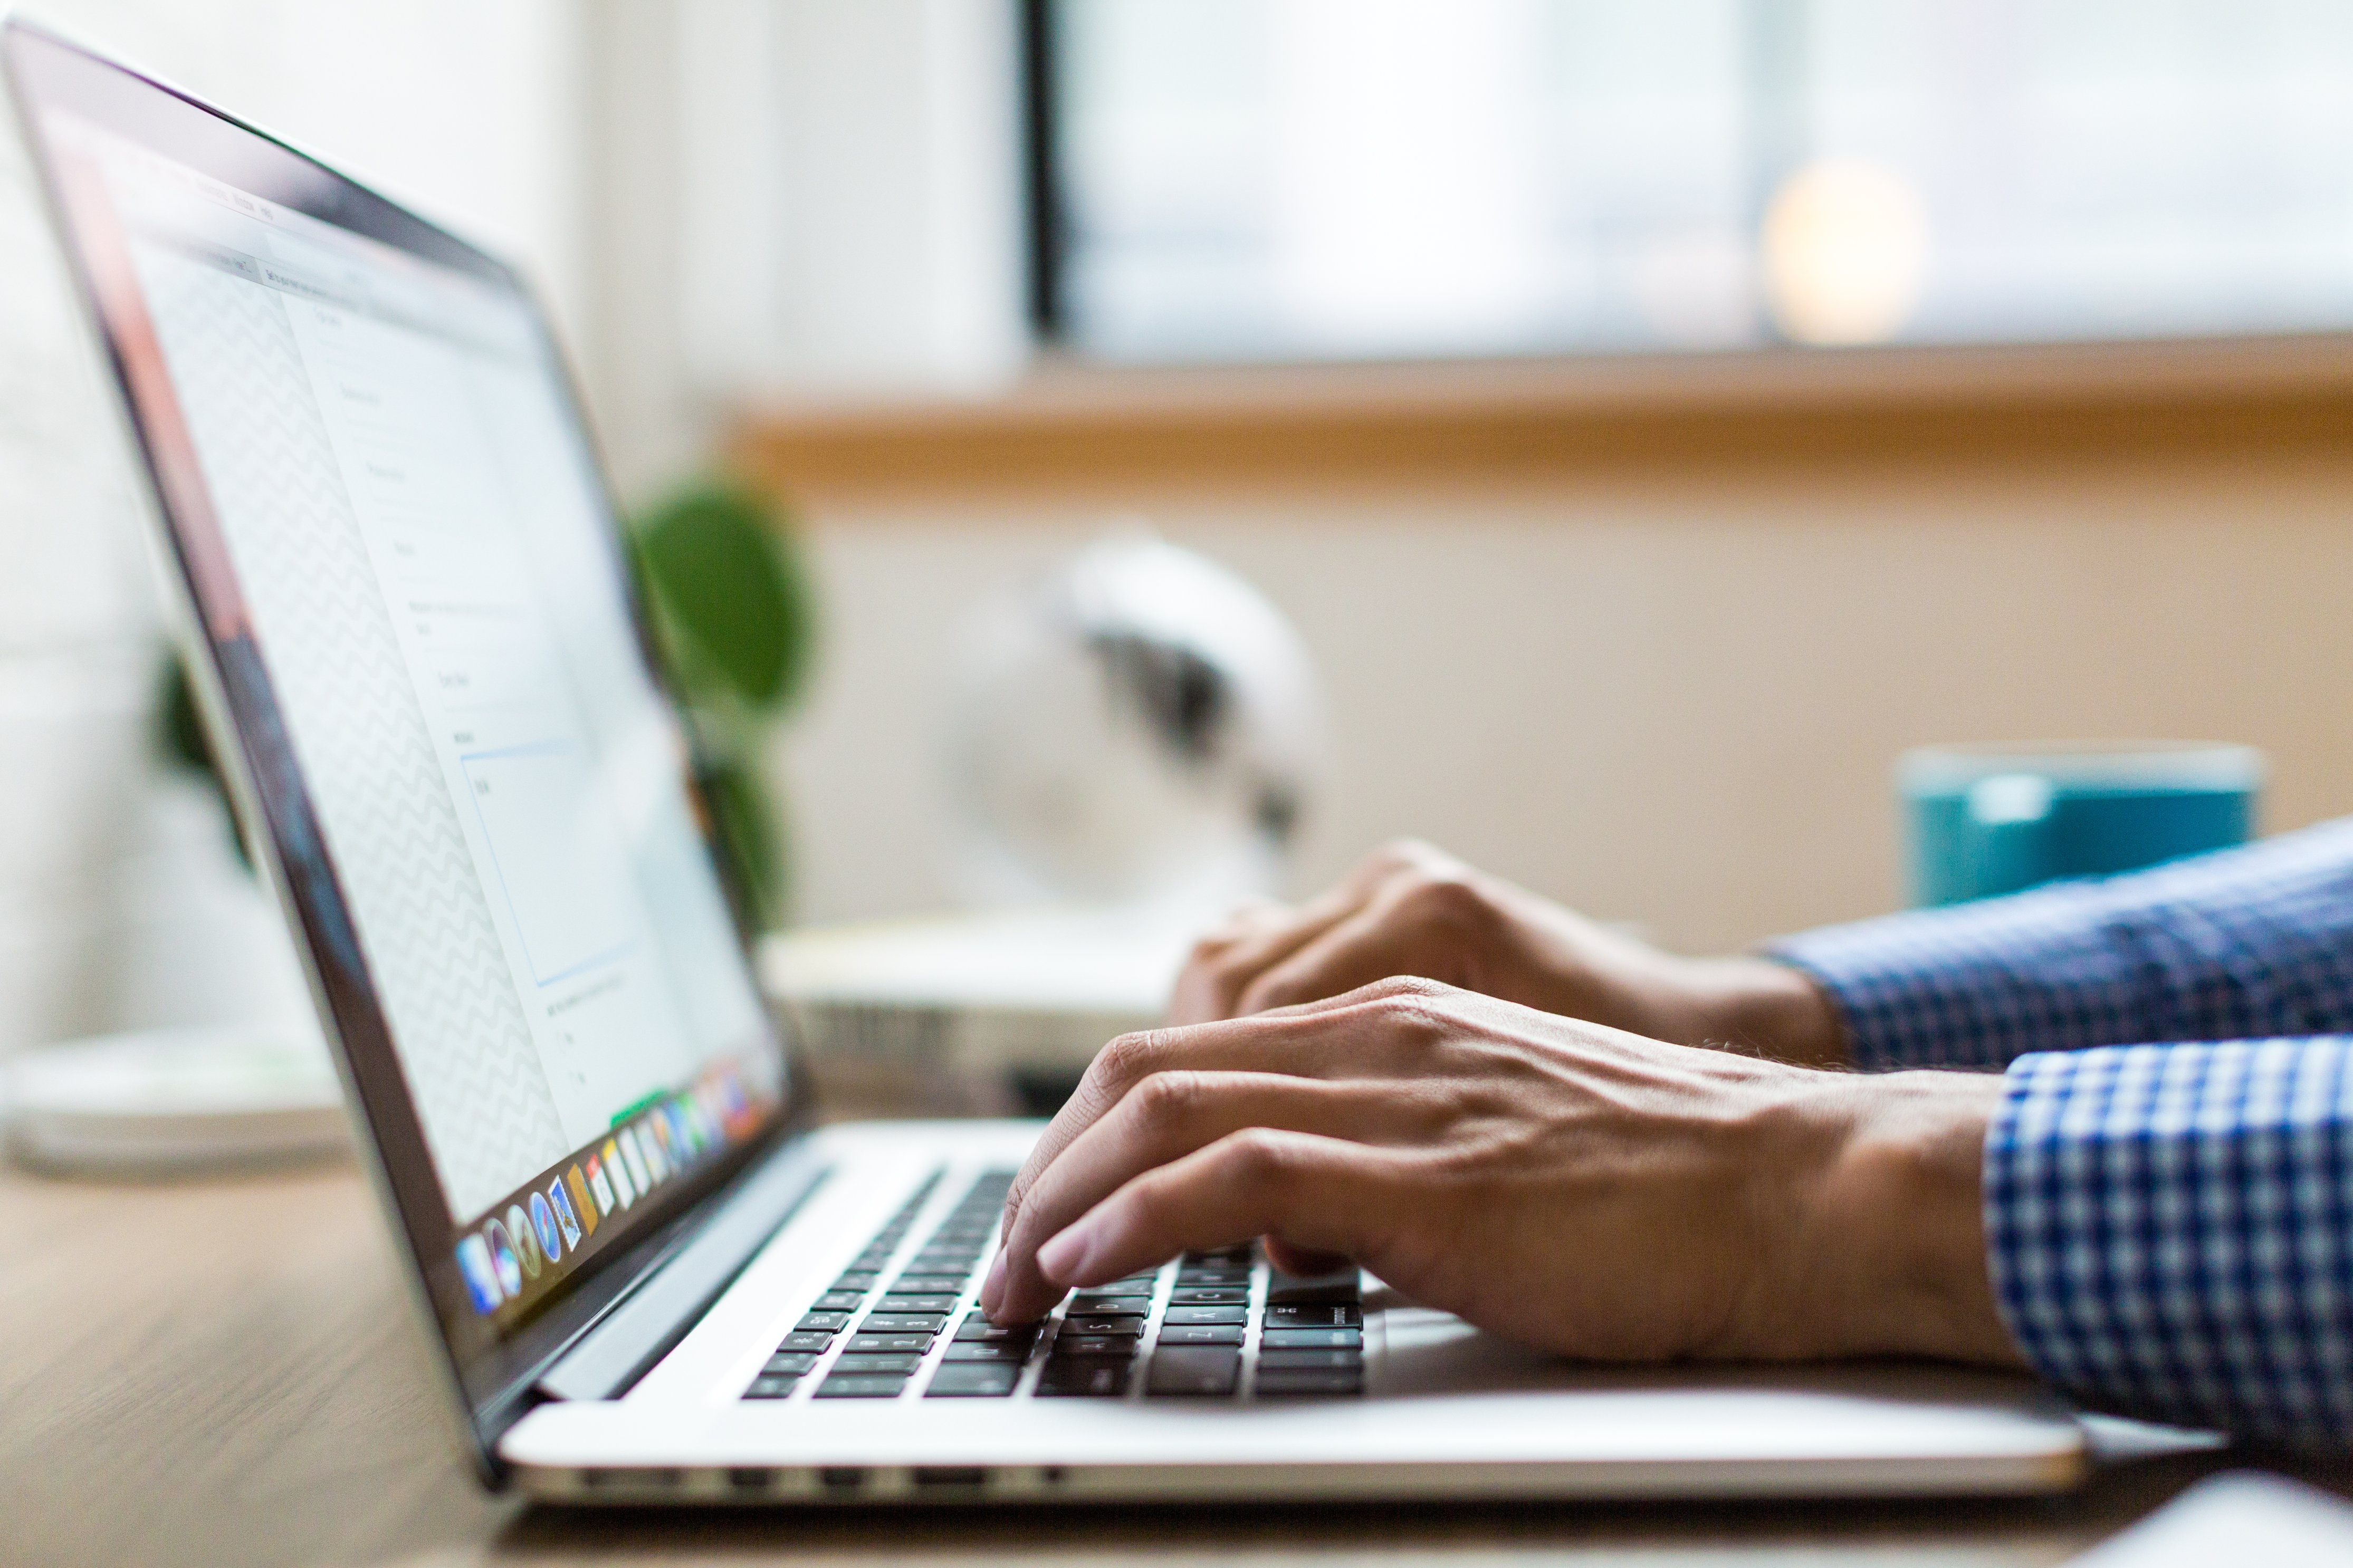 how to find writing jobs | how to find editing jobs | where to find writing jobs online | where to find editing jobs online | writing jobs | editing jobs | proofreading jobs | copyediting jobs | where to find work as a writer | where to find work as an editor | where to find work as a proofreader | how to make money writing | how to make money proofreading | how to make money as an editor | how to make money online | online writing jobs | online editing jobs | places that hire writers | places that hire editors | places that hire proofreaders